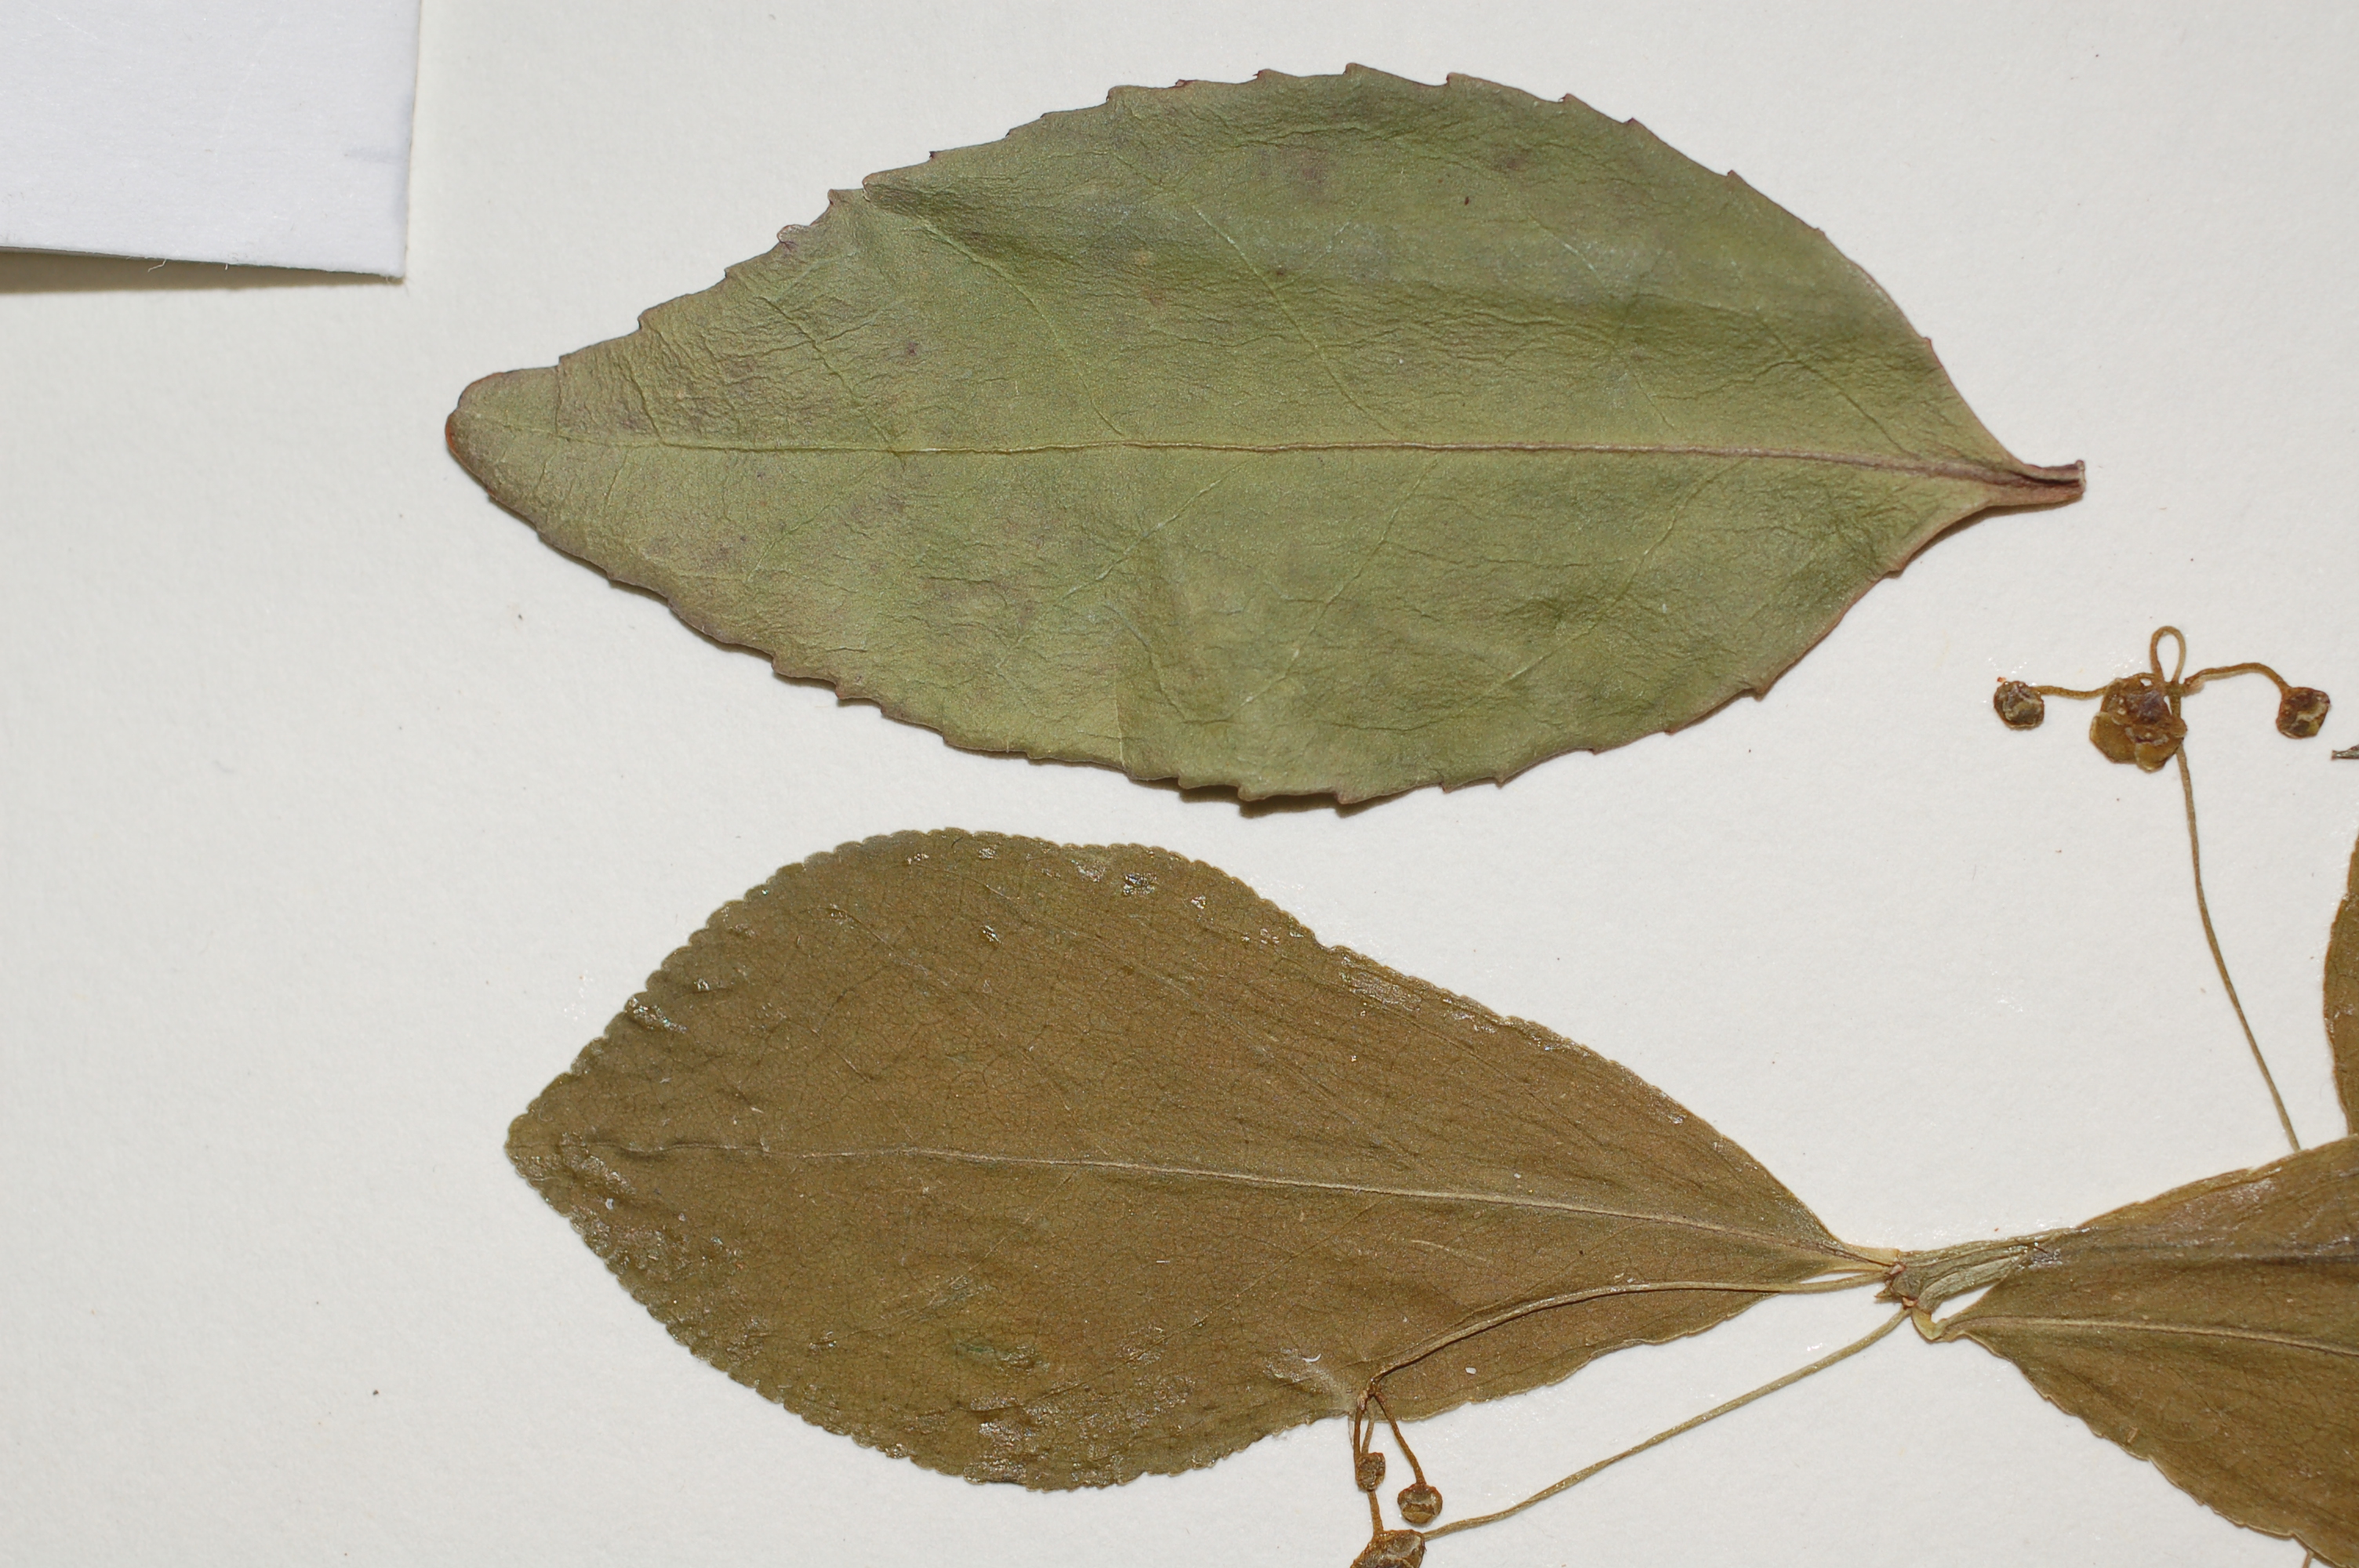 Euonymus obo(l) fort(r)3